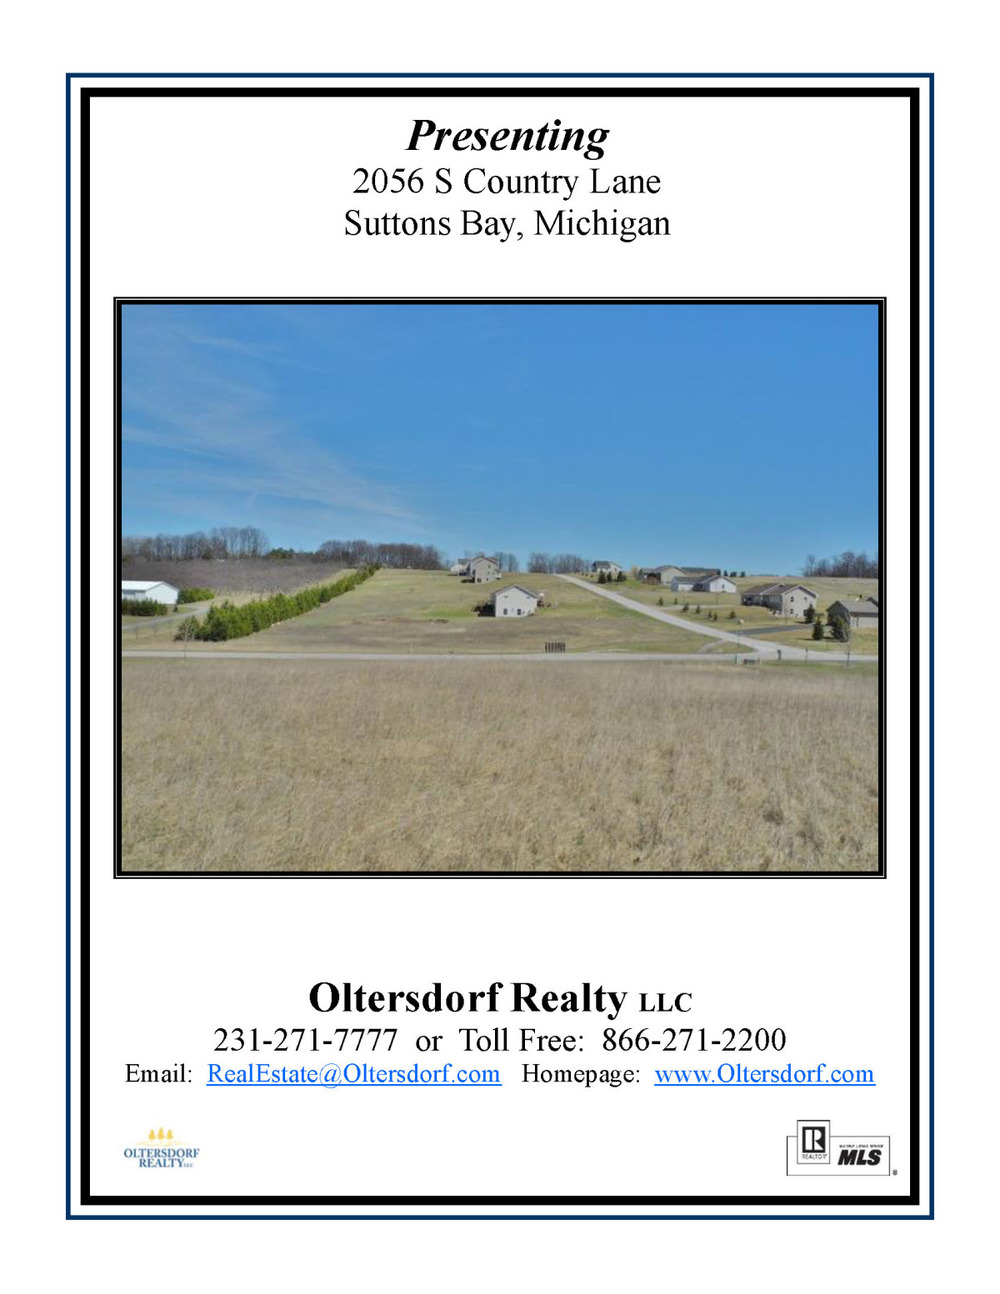 2056 s country lane, suttons bay, donnybrook farms, leelanau county vacant lot for sale by oltersdorf realty llc - marketing package (1).jpg